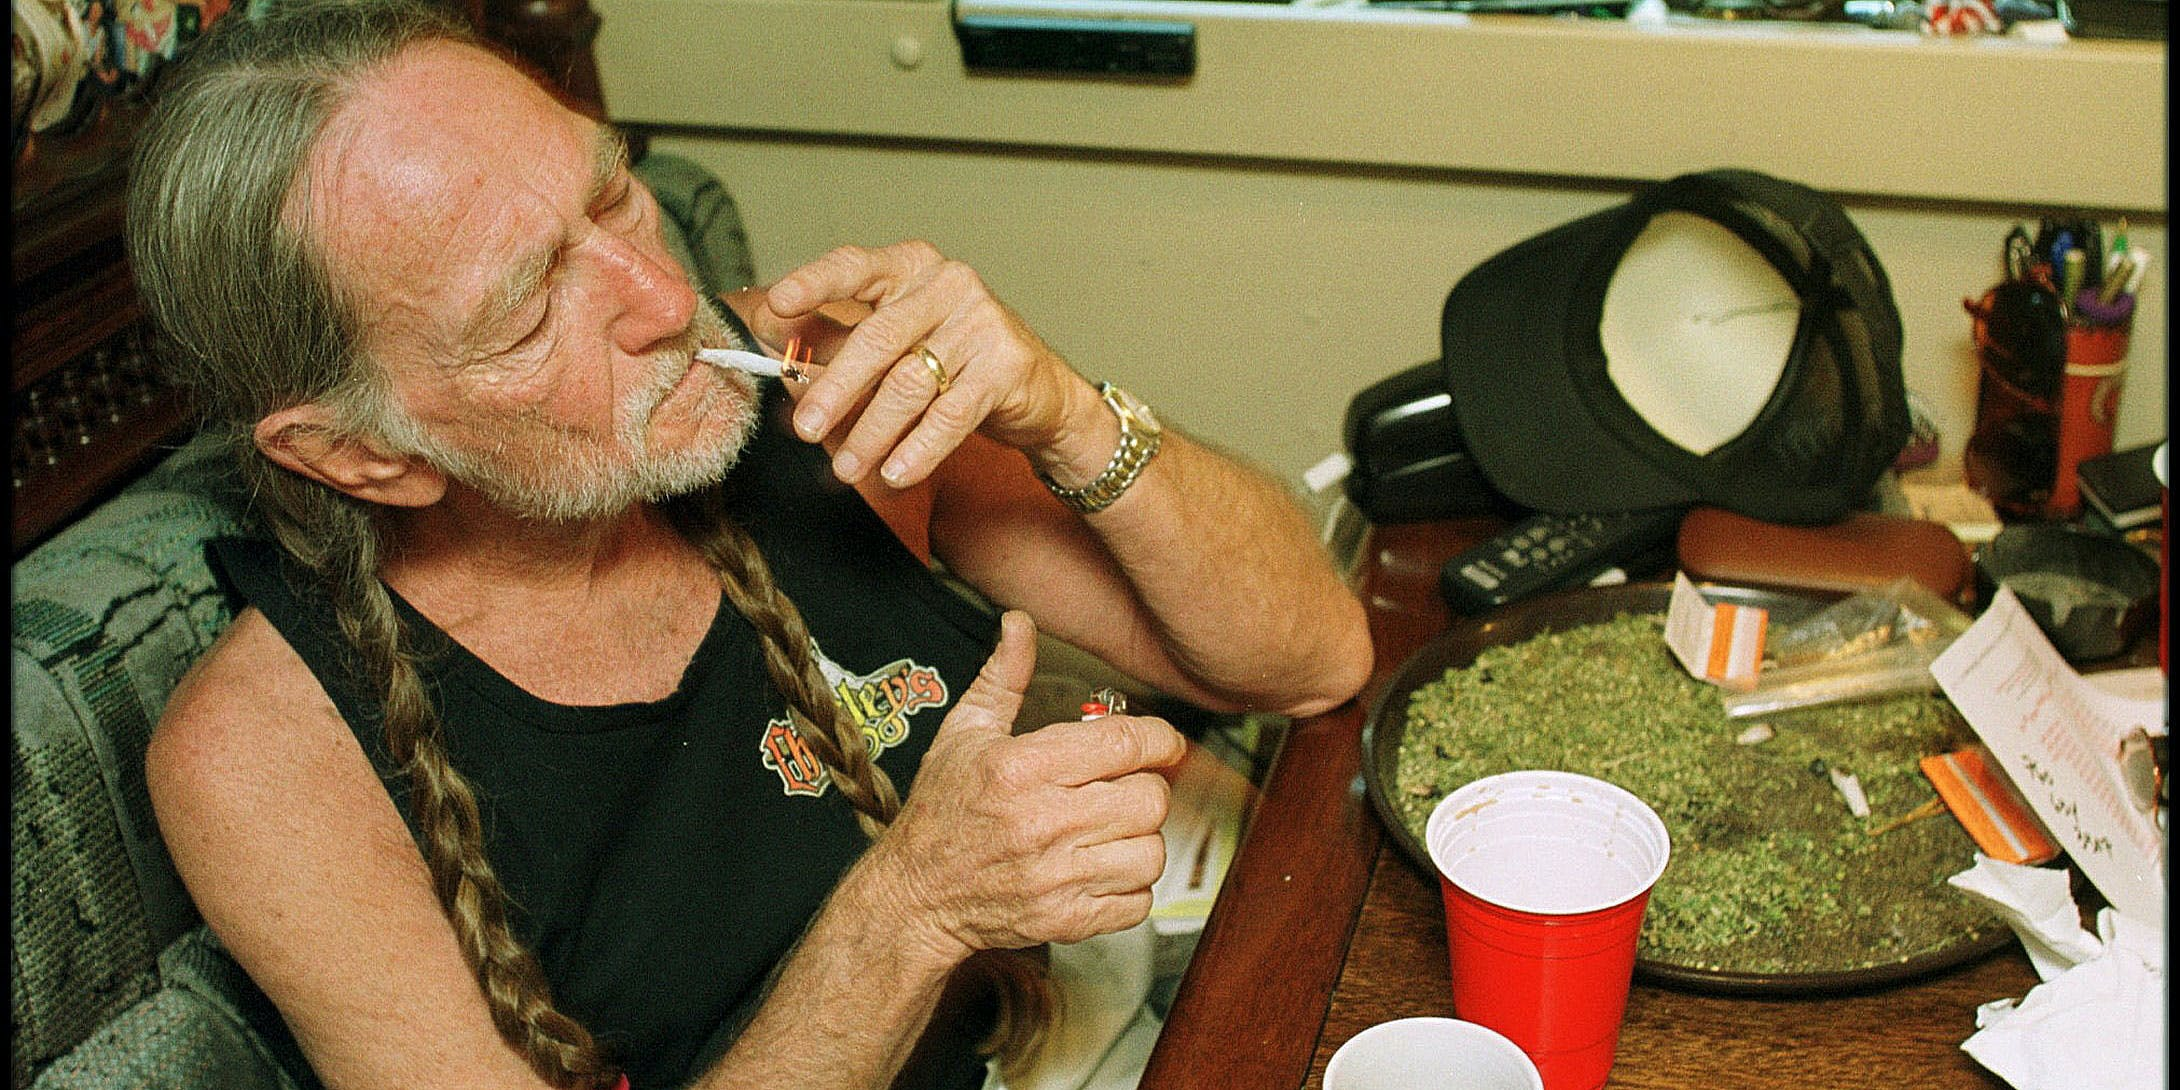 At 85, Willie Nelson Releases His 67th Album and a Weed Strain To Go With It